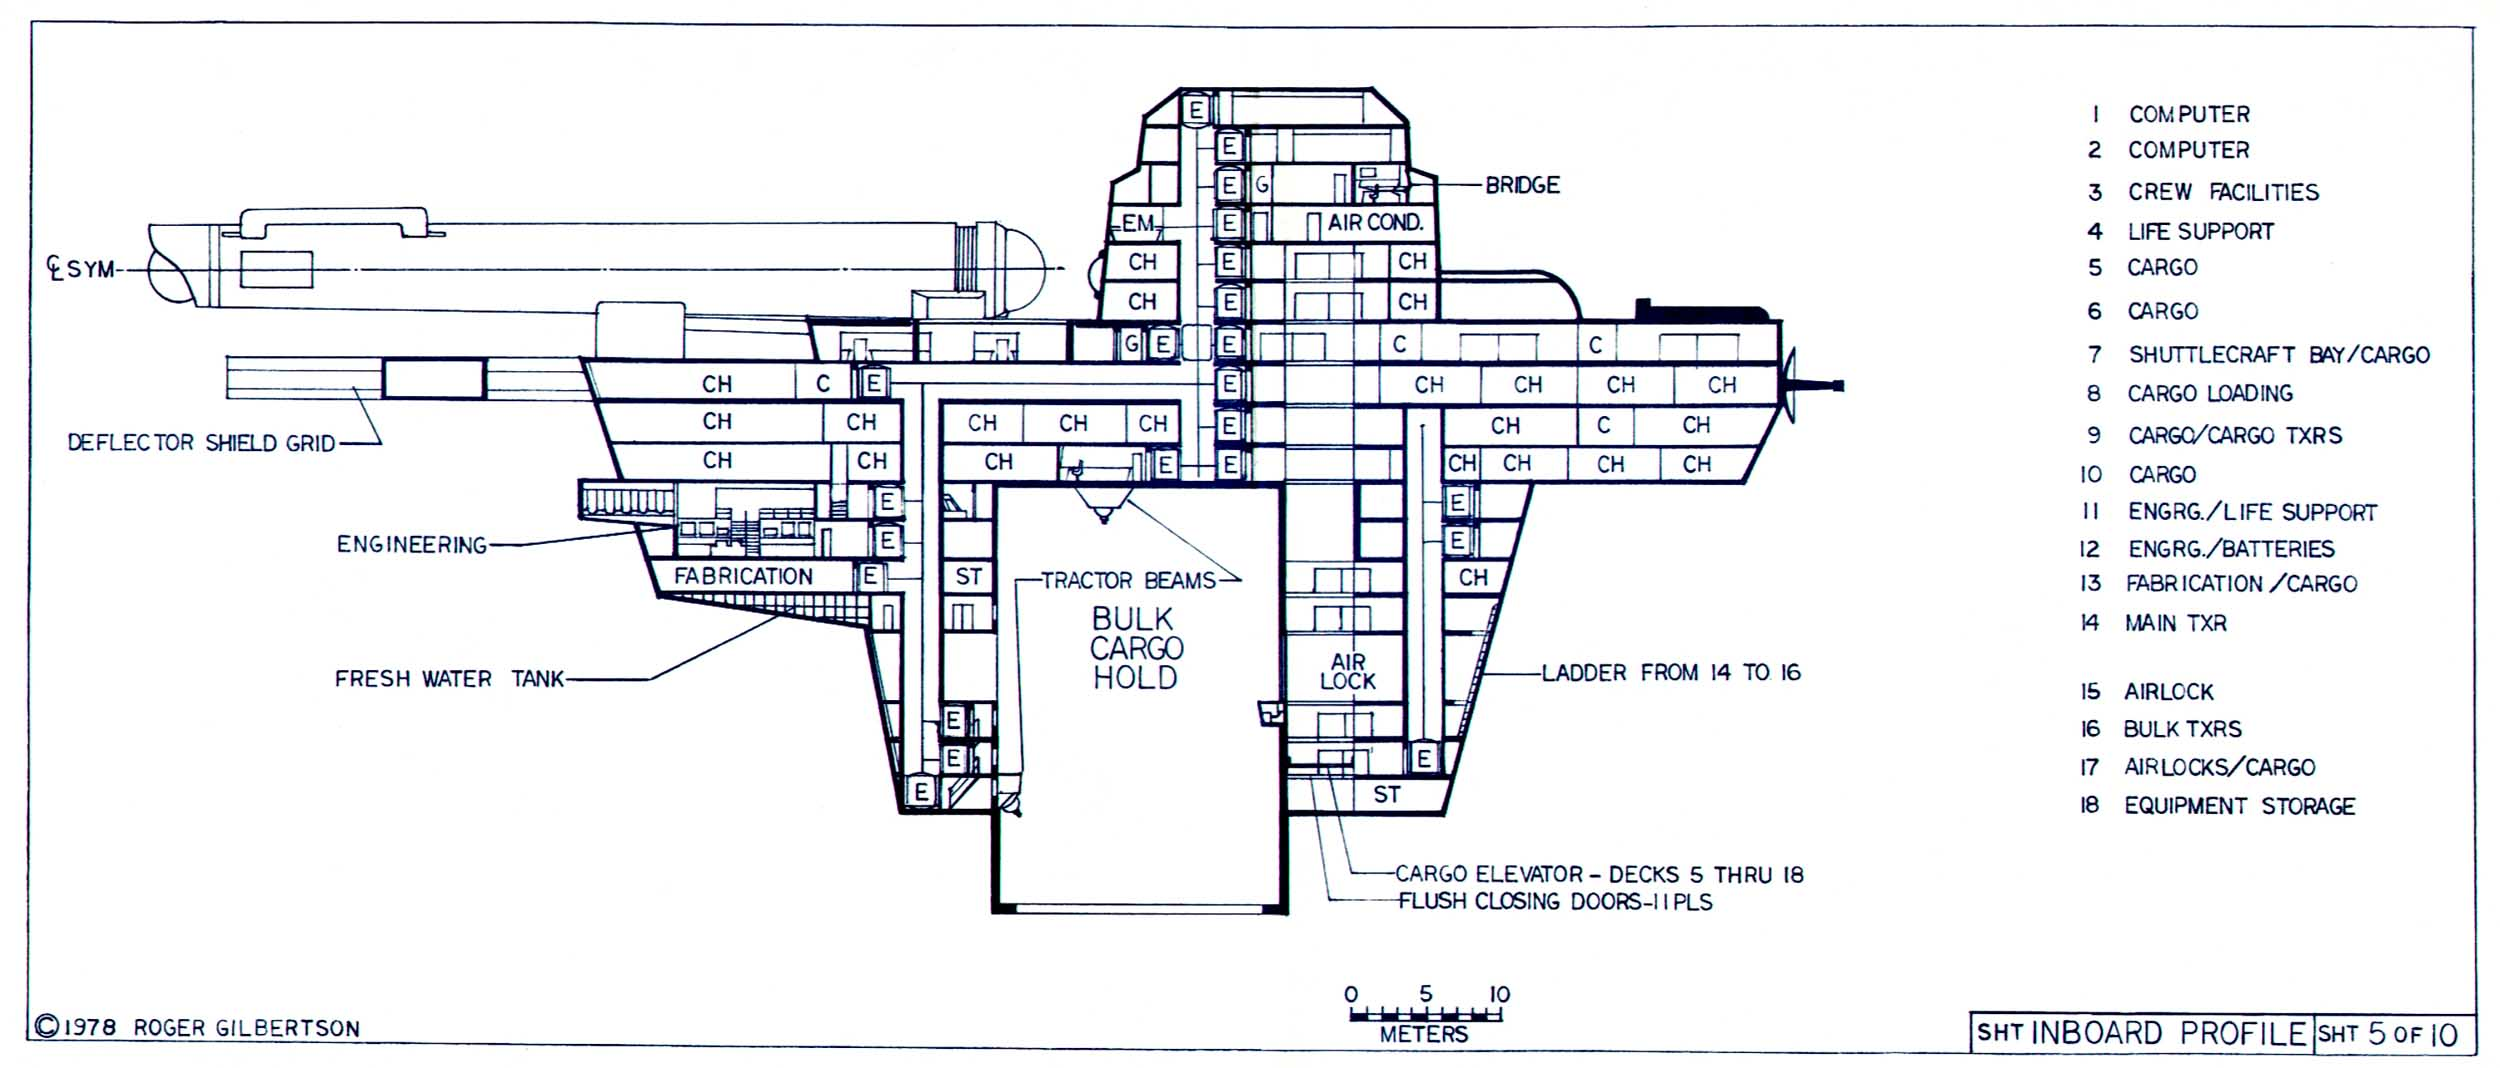 Awesome Ship Floor Plans Ideas Flooring amp Area Rugs Home